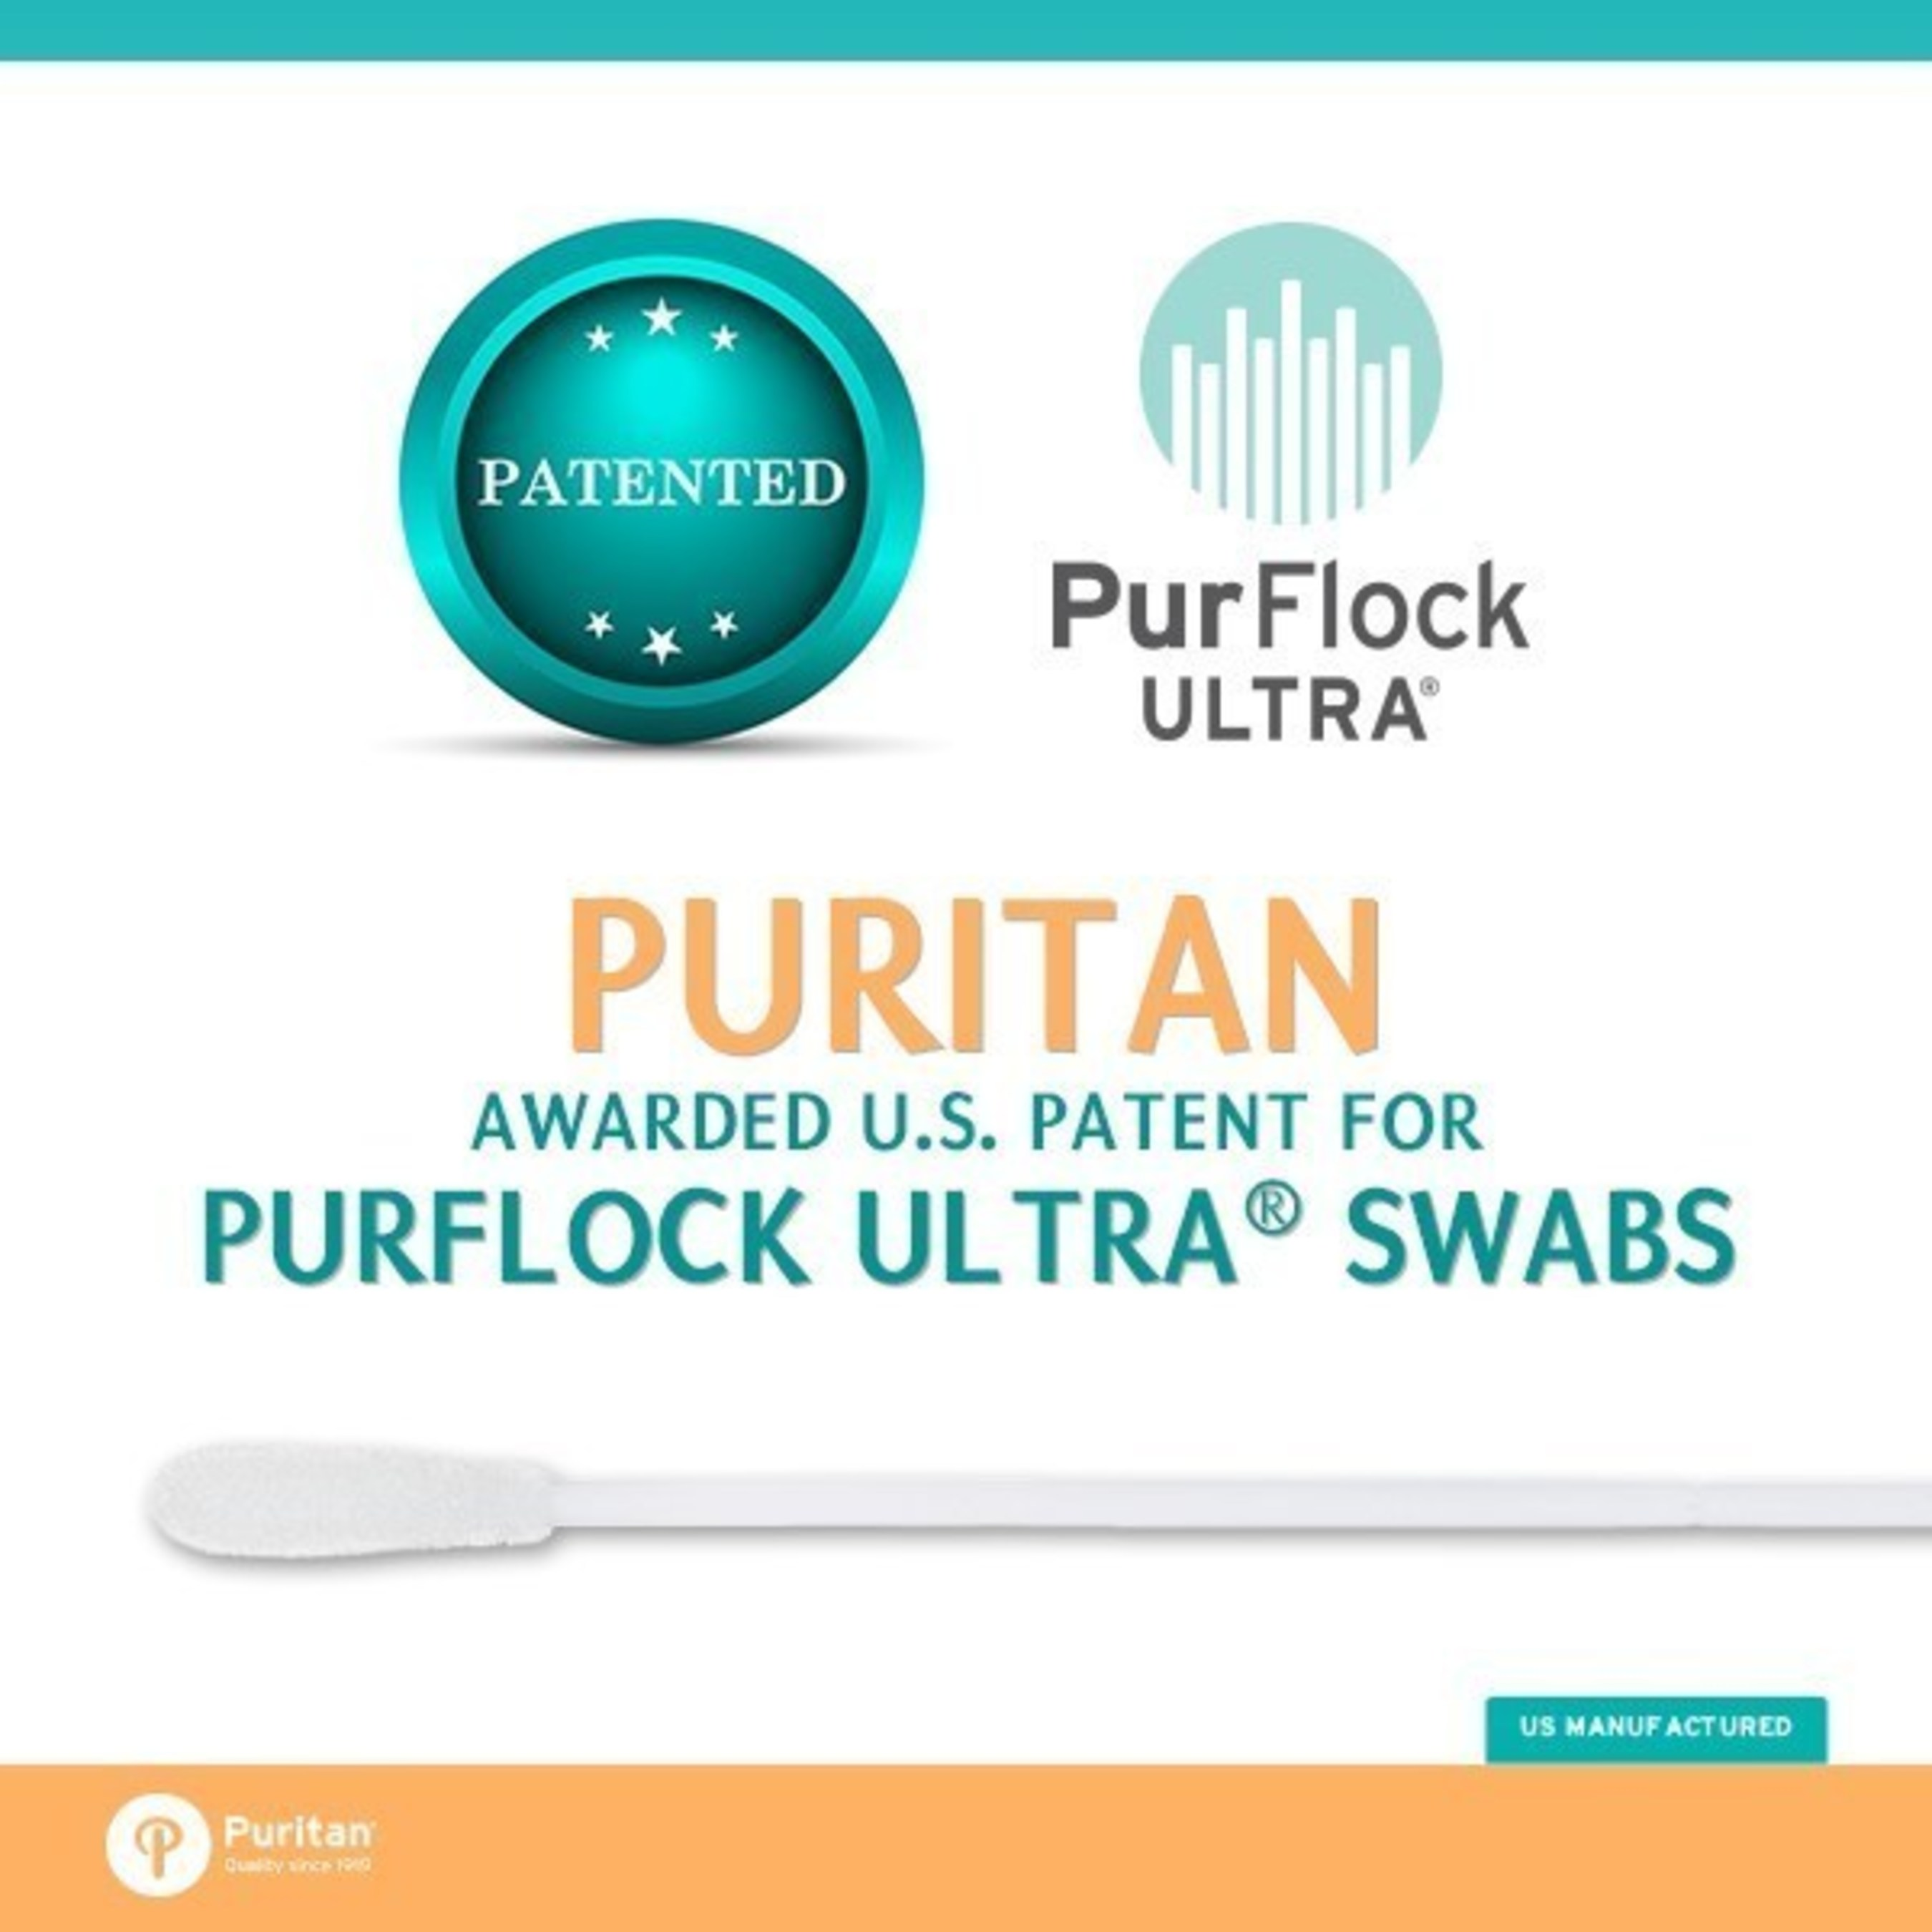 Puritan Medical Products Awarded Second US Patent for PurFlock Ultra(R) Flocked Swabs